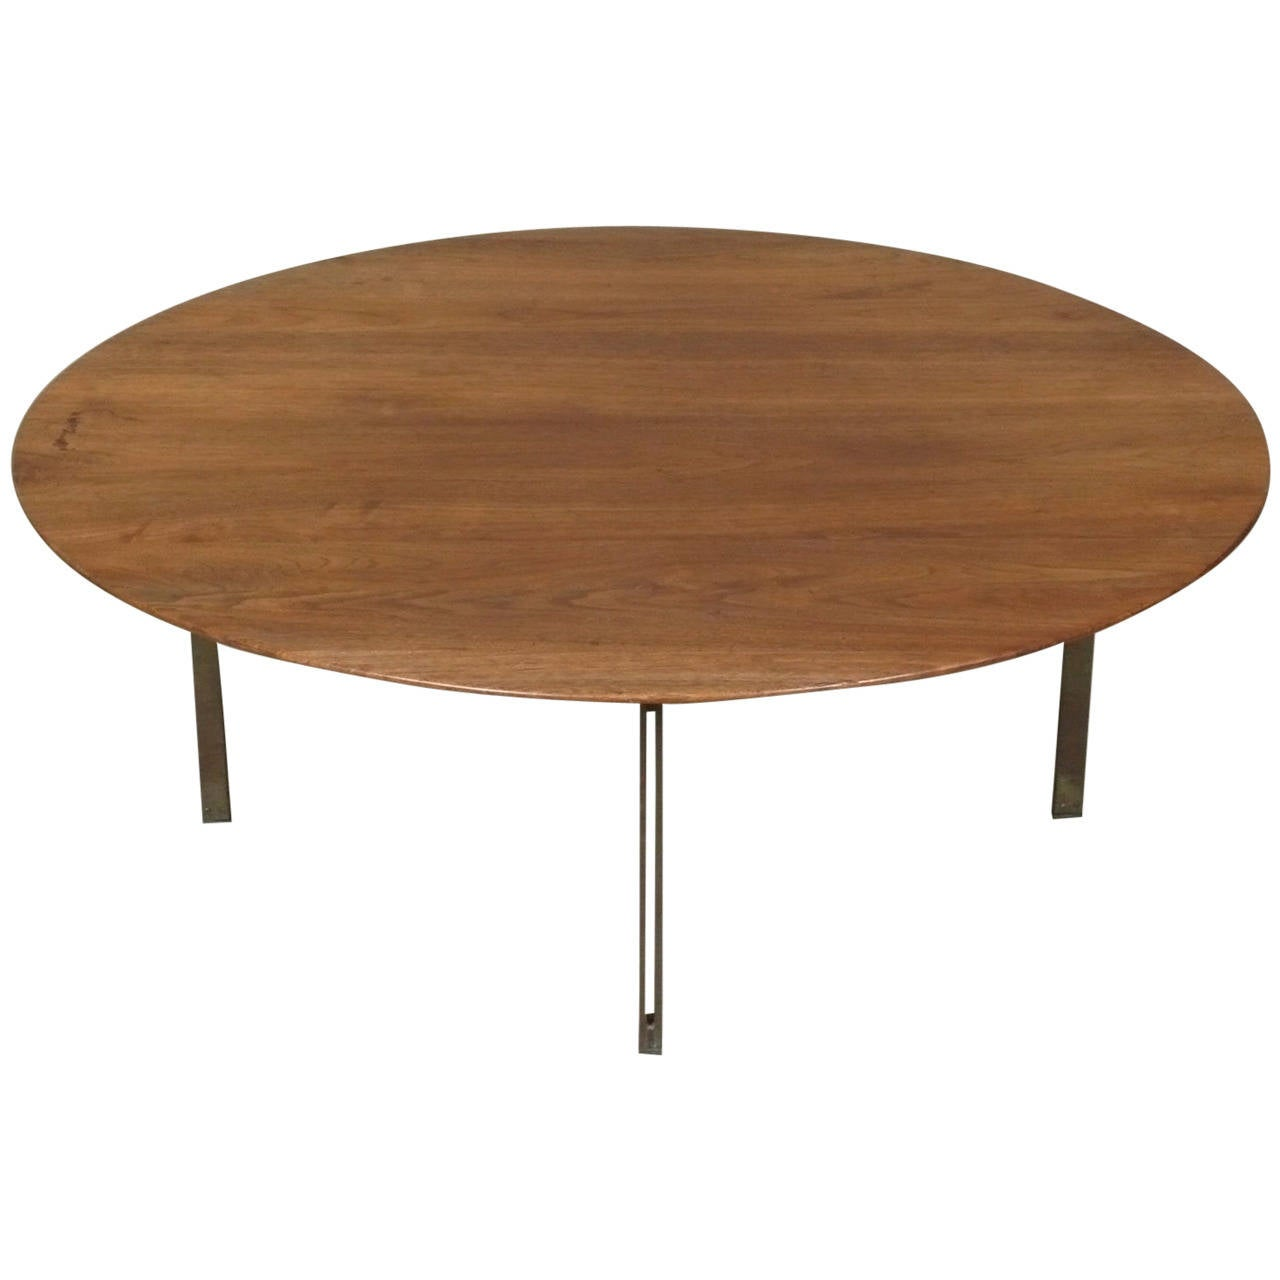 Florence Knoll Parallel Bar Cocktail Table At 1stdibs